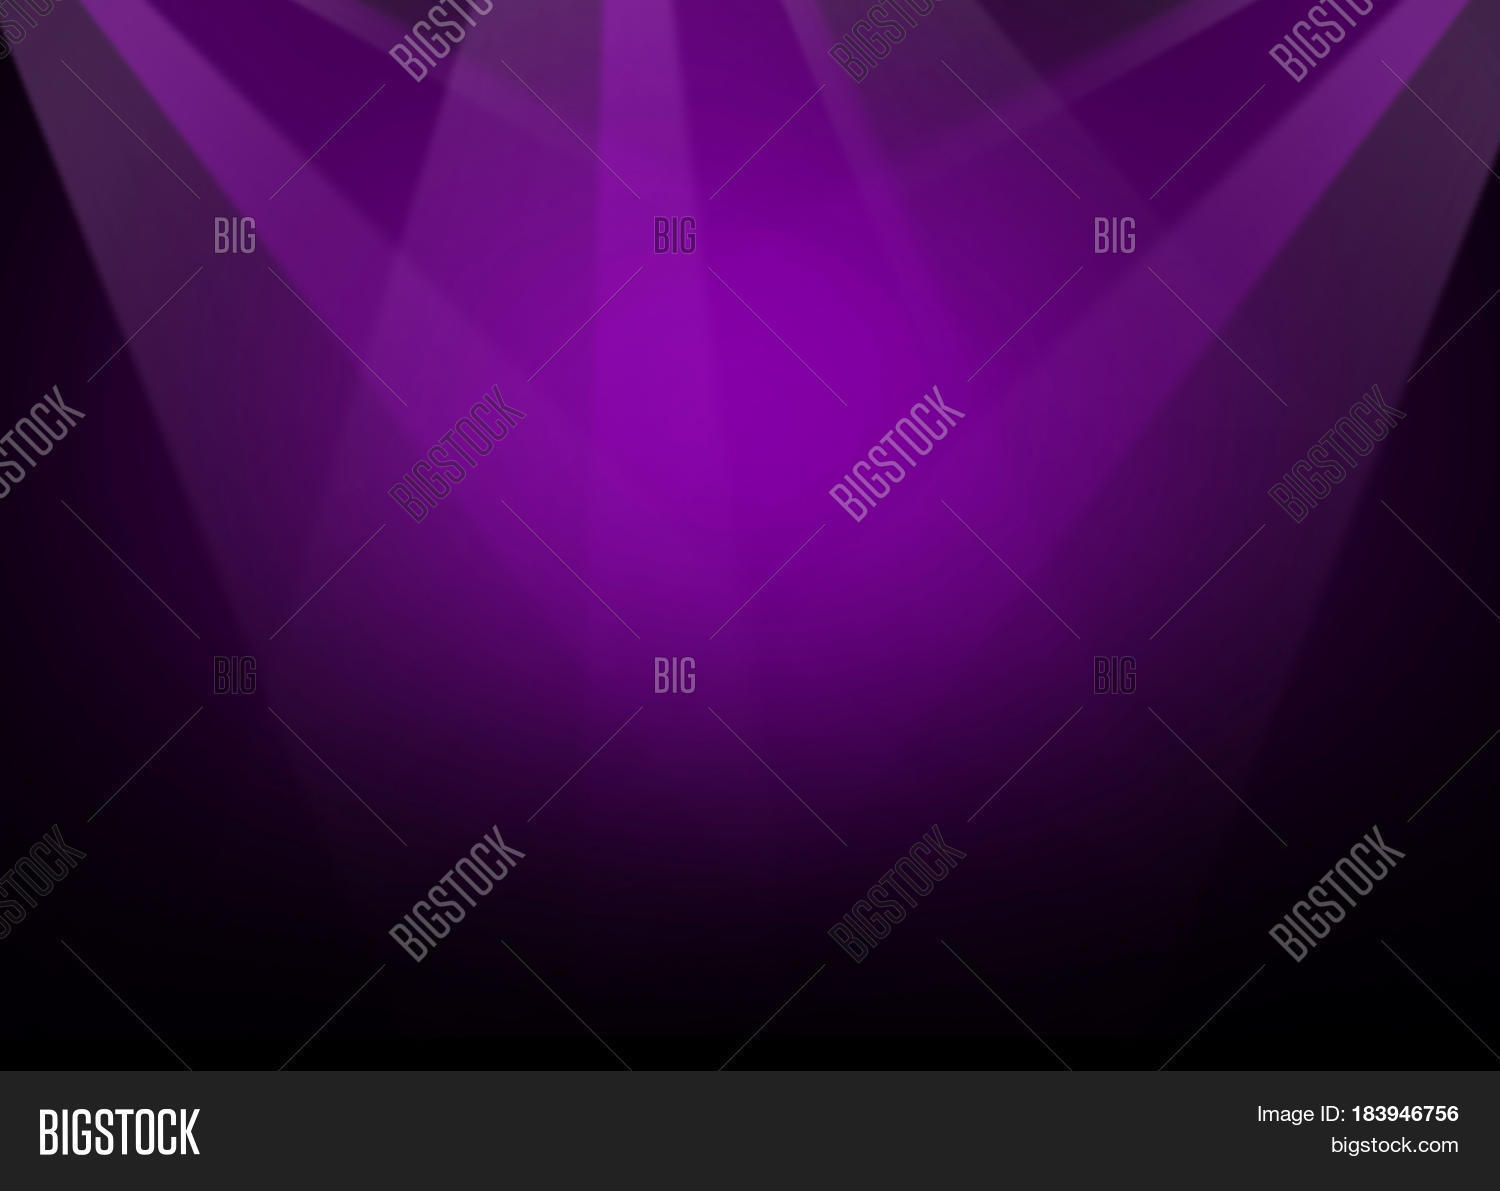 Flood Lights On Stage : The concert on stage background with flood lights stock